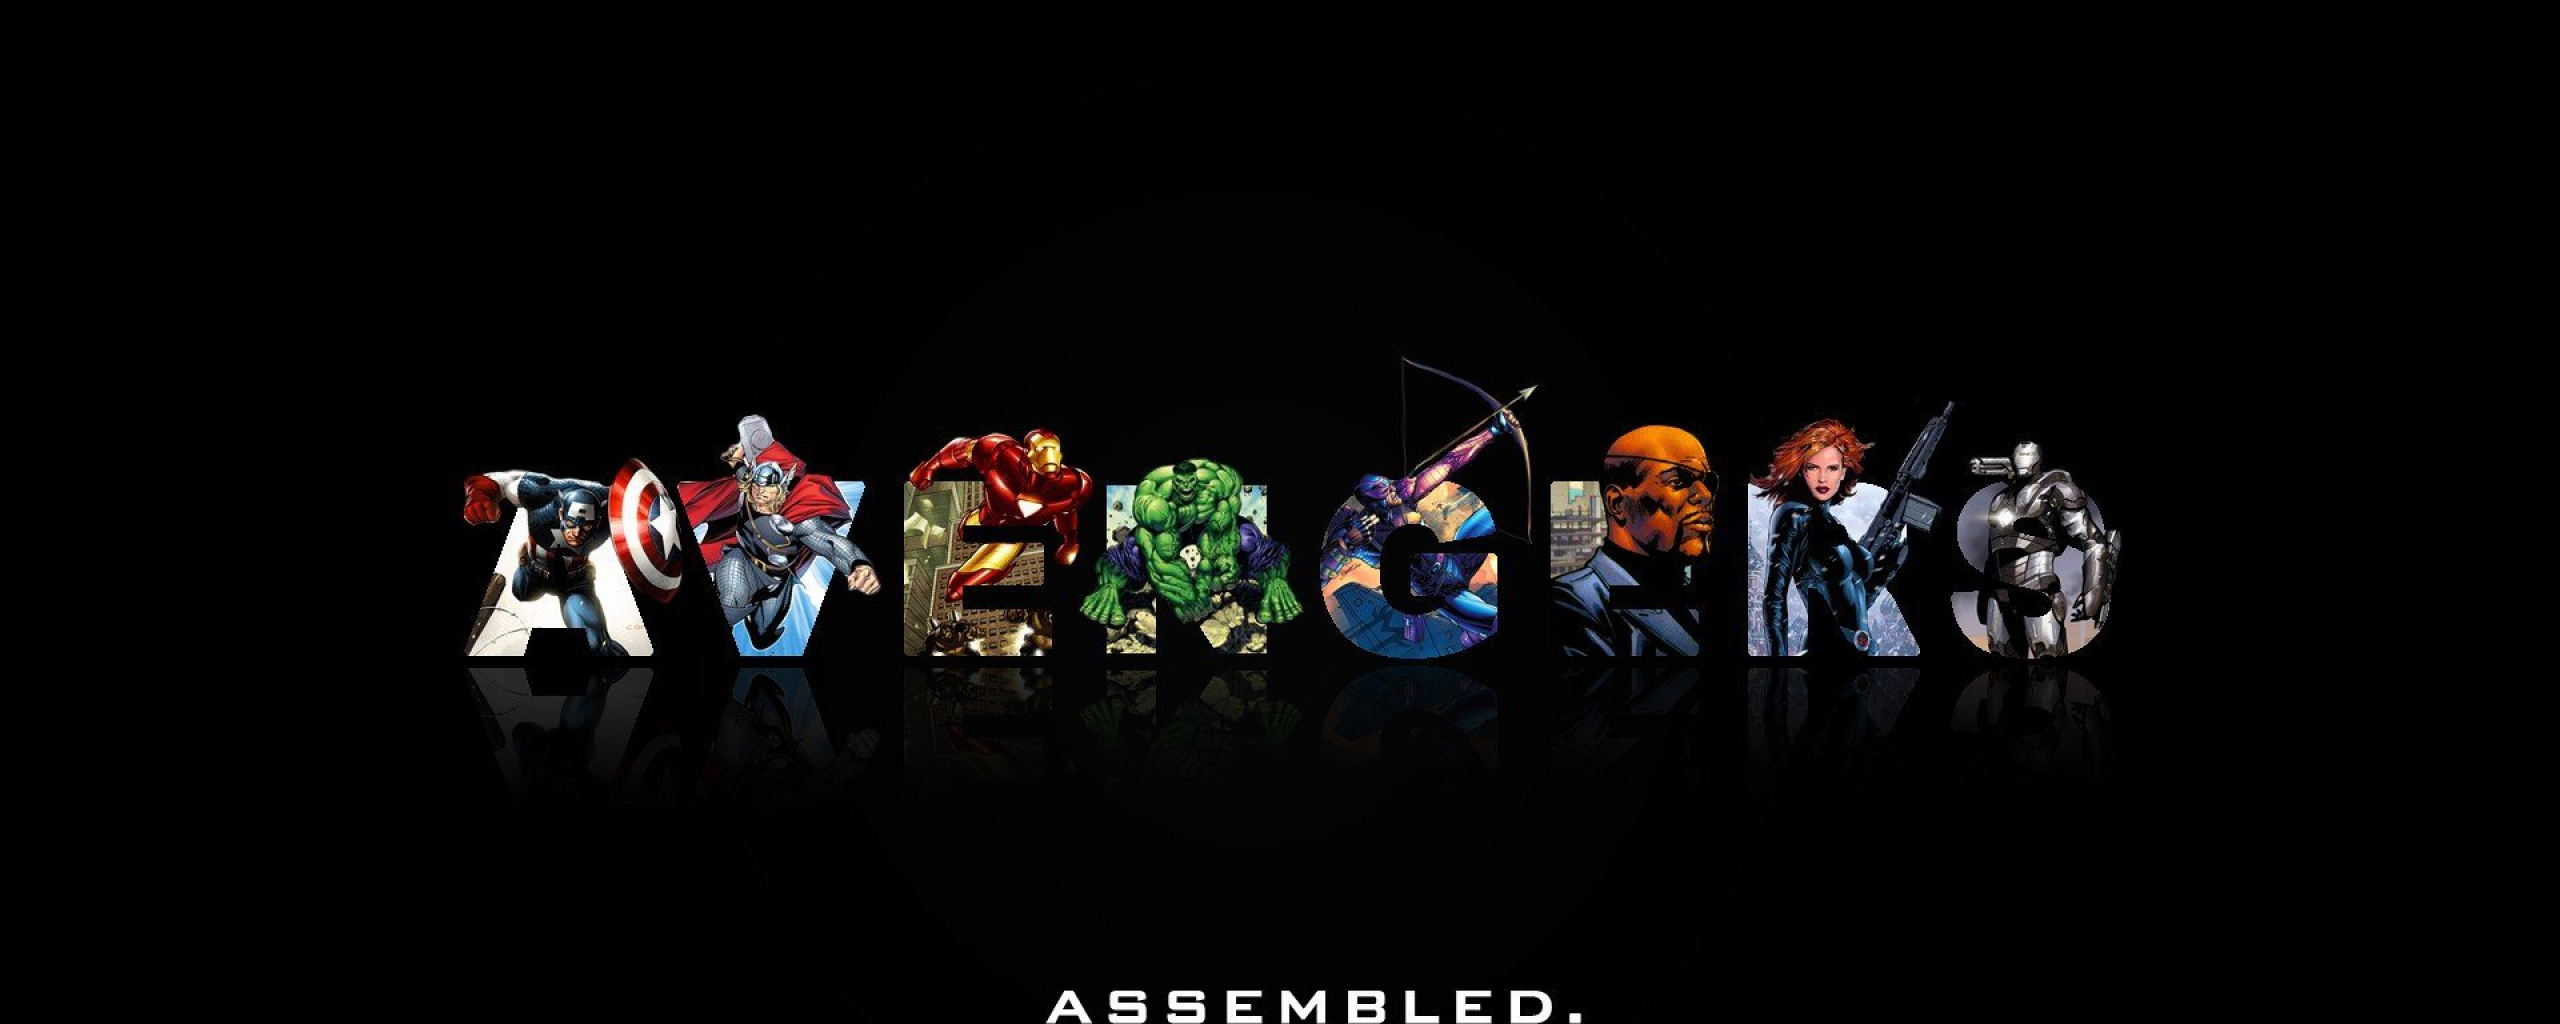 Fantastic Wallpaper Mac Marvel - Wallpaper-Marvel-042  HD_7035100.jpg